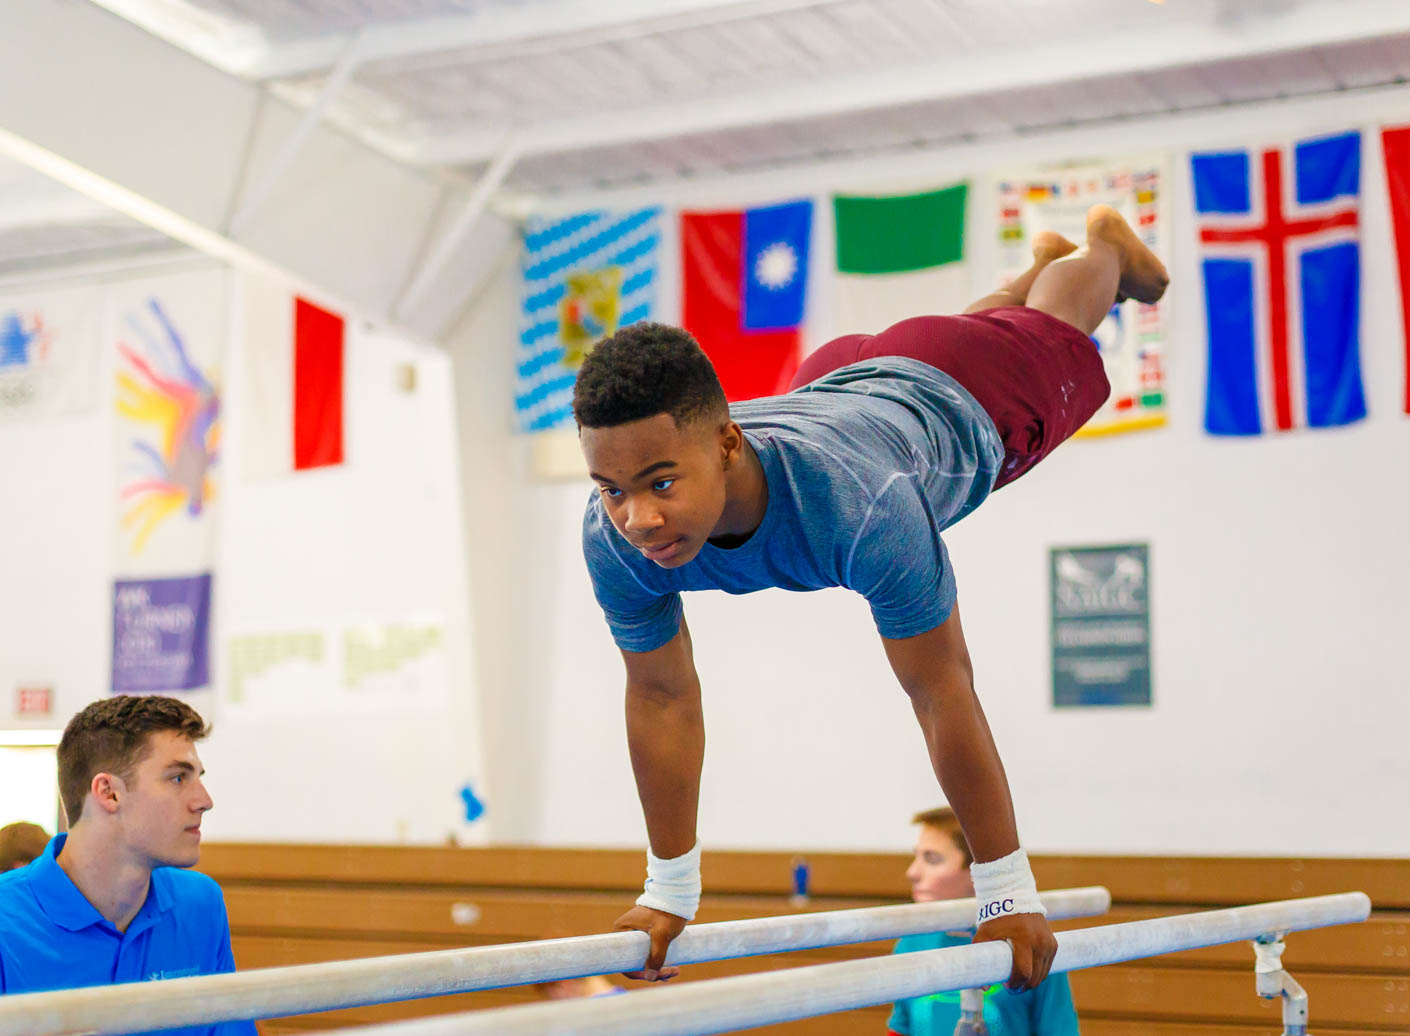 camper being coached on the parallel bars